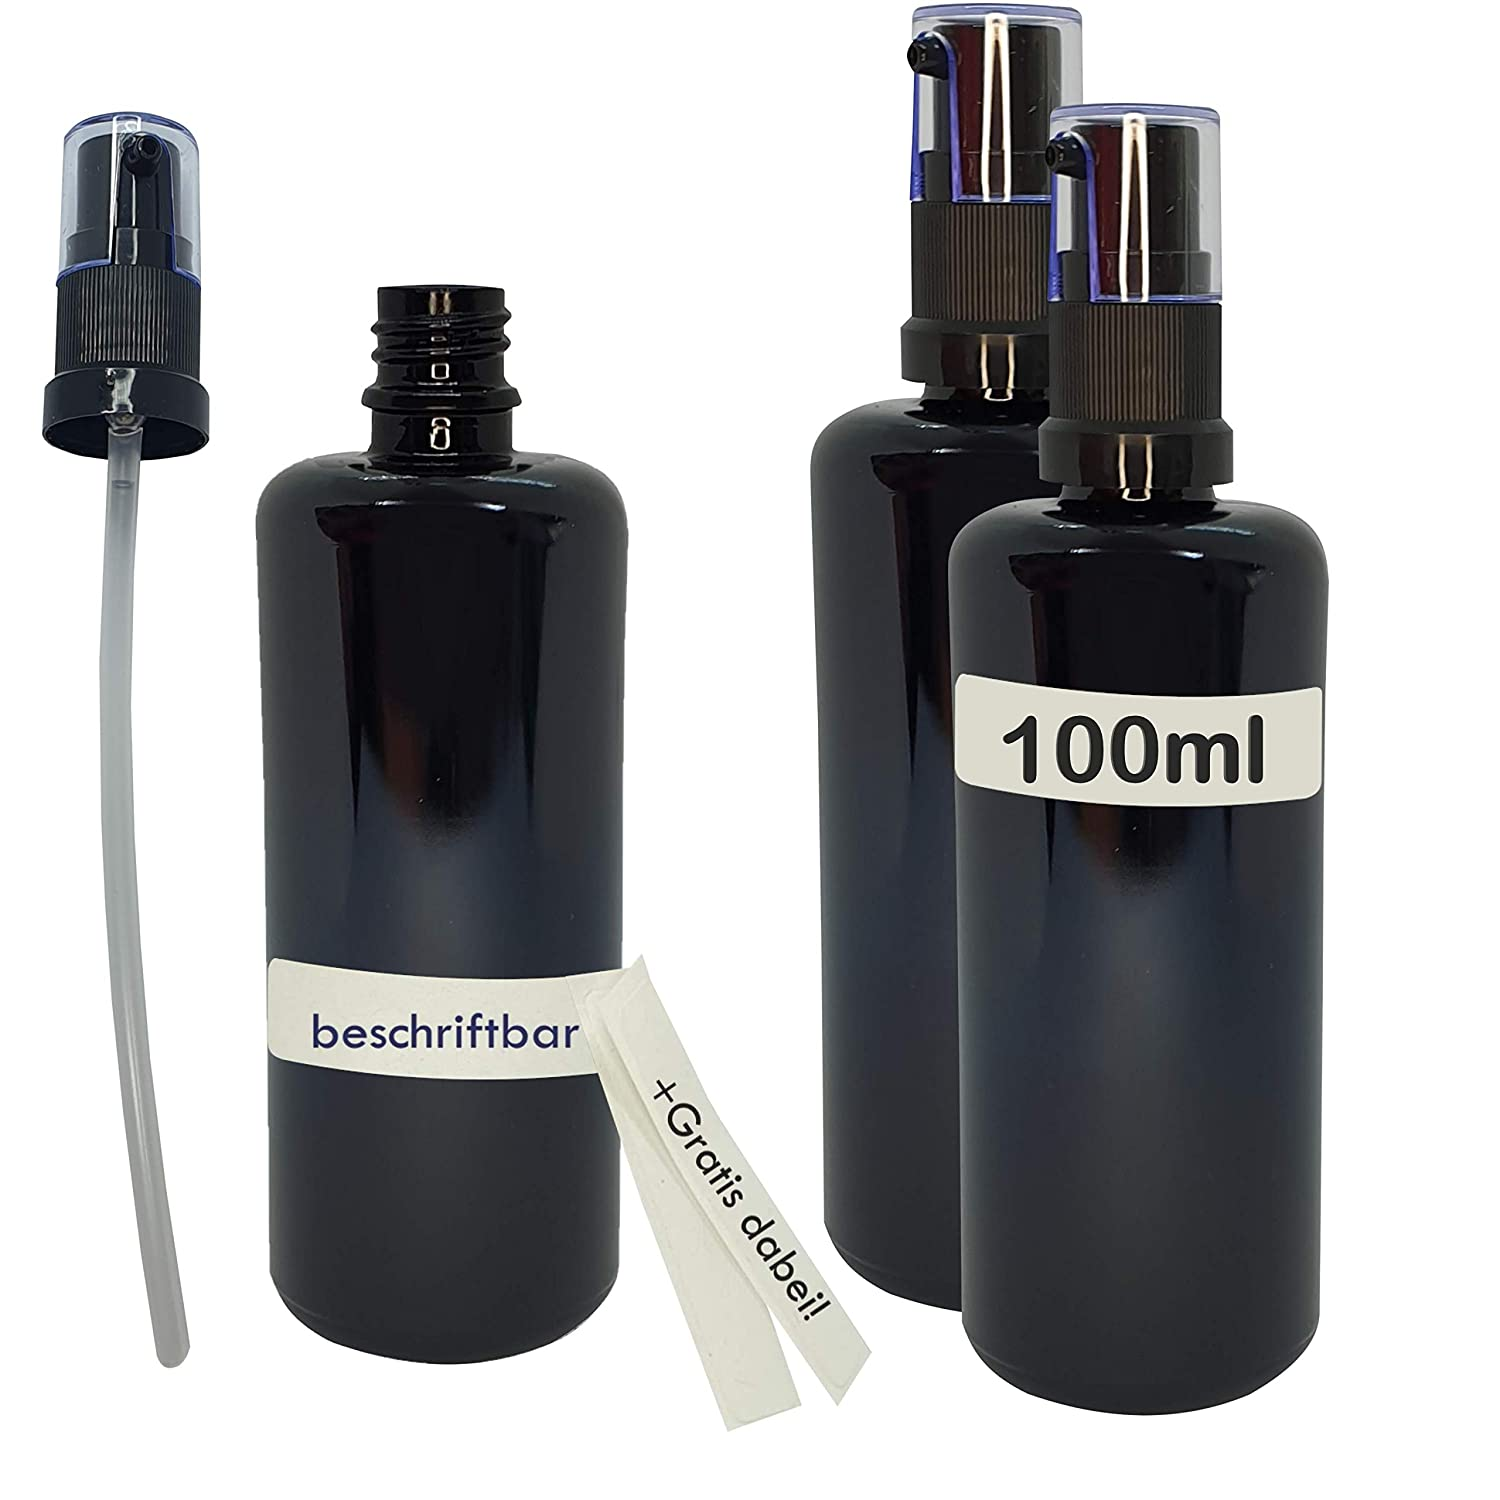 Naturellia 3 x 100 ml Purple Glass Empty Bottle Miron Glass Pharmacy Glass with Pump Attachment Purple Glass Pump Bottle Glass 3 x 100 ml 6 x Writeable Stickers for Organic Preservation